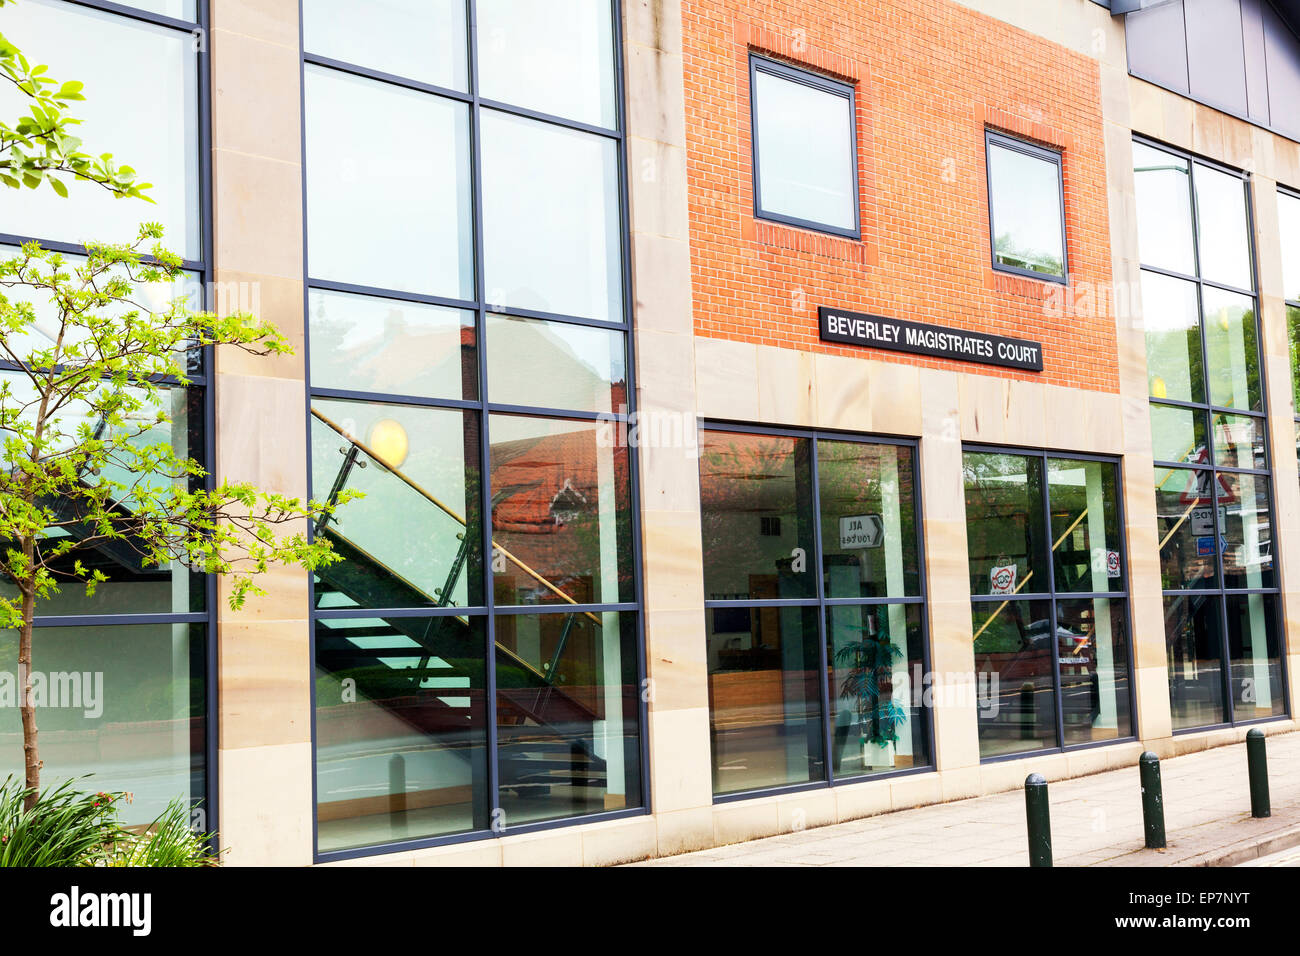 Beverley magistrate magistrates court house building exterior front entrance facade  East Riding Of Yorkshire UK - Stock Image